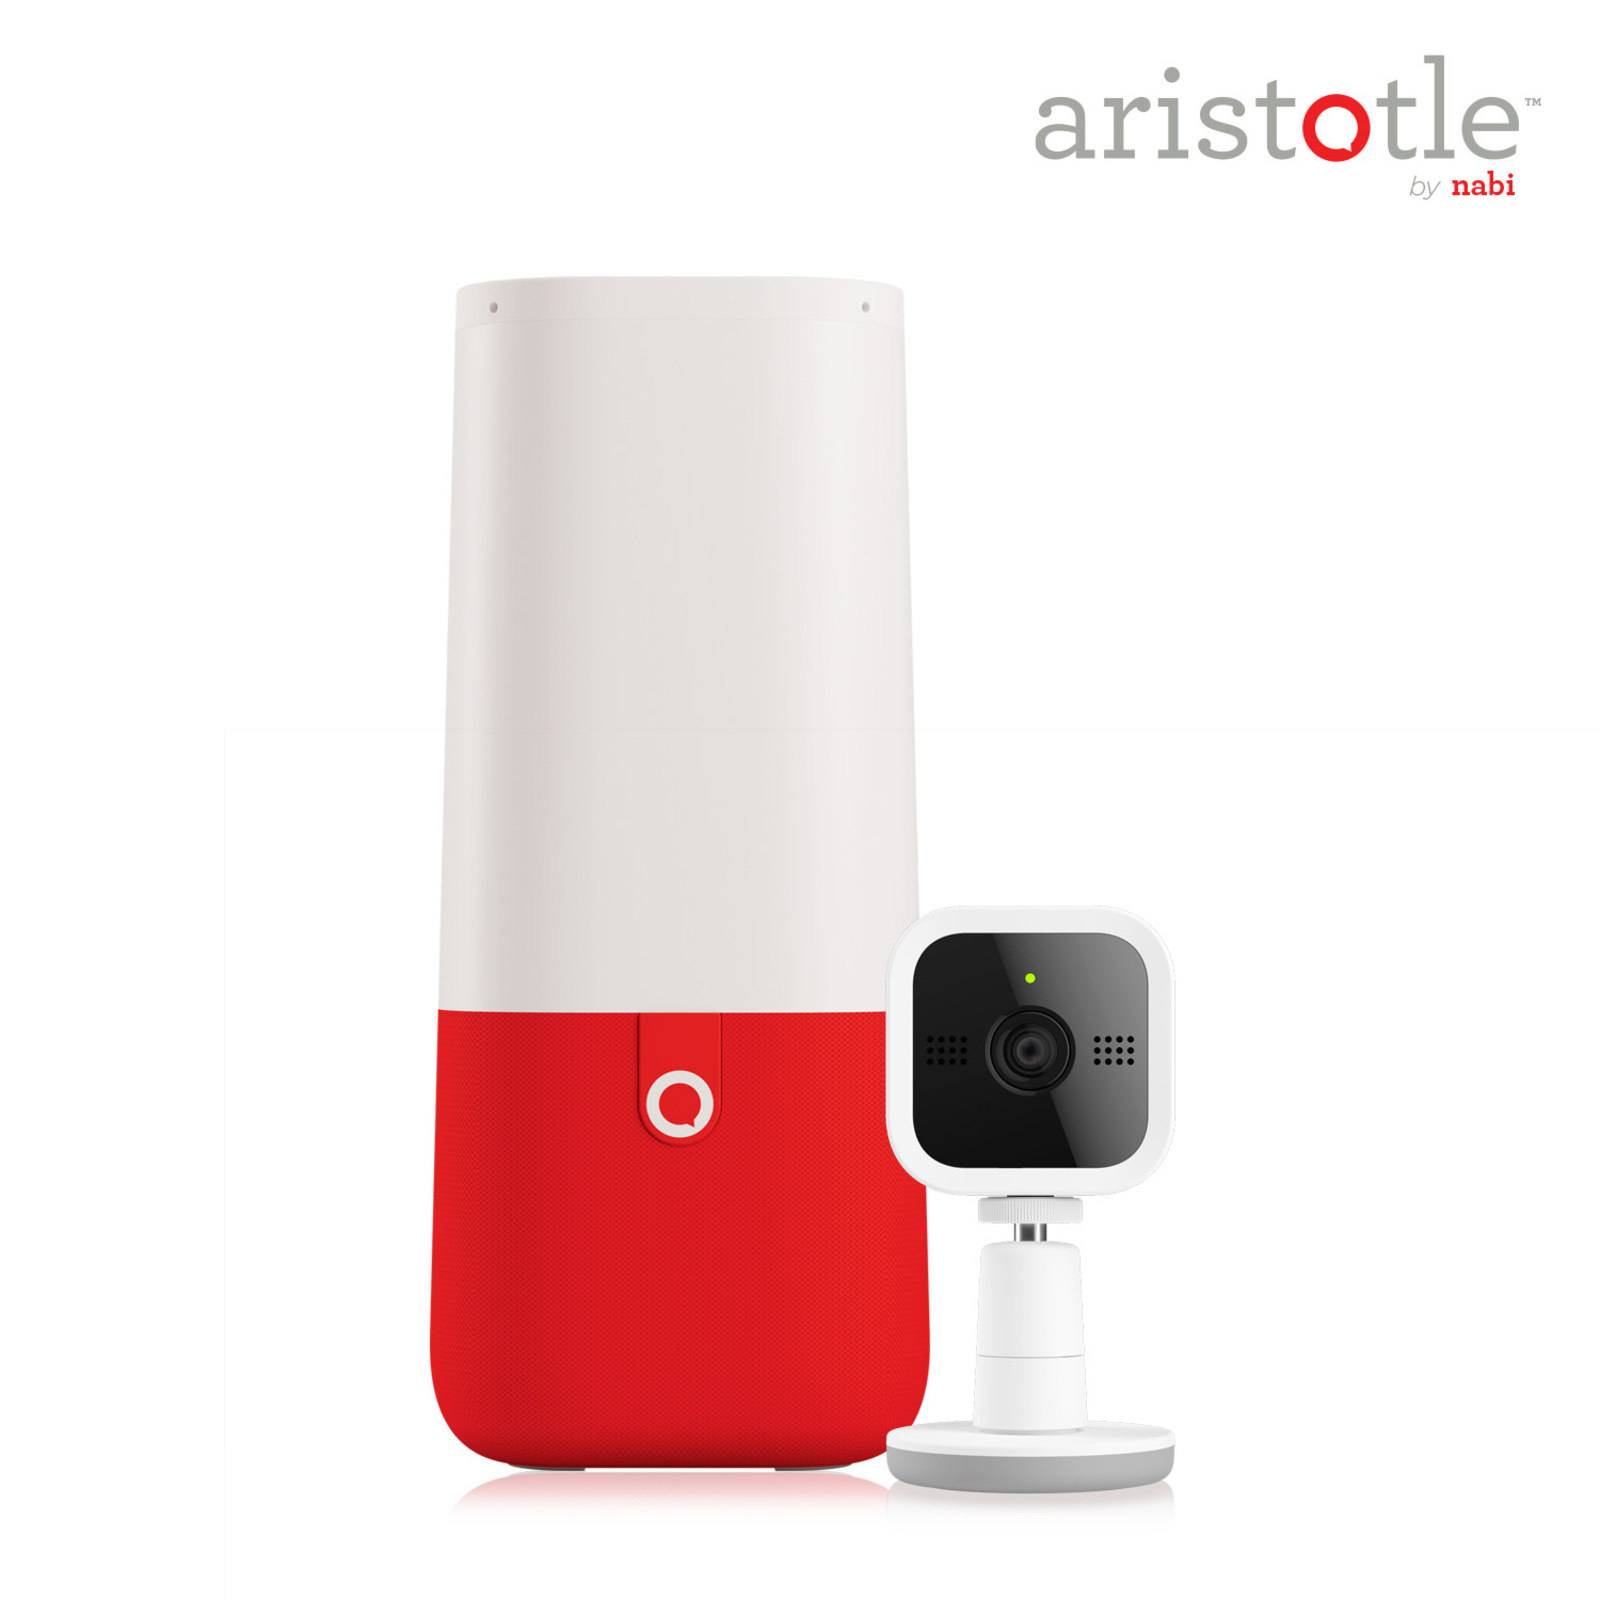 Aristotle, a smart home hub aimed specifically at kids, made by Mattel's Nabi brand. Mattel said Wednesday that it will not move forward with plans to sell the device, which was designed for a child's room starting from infancy.